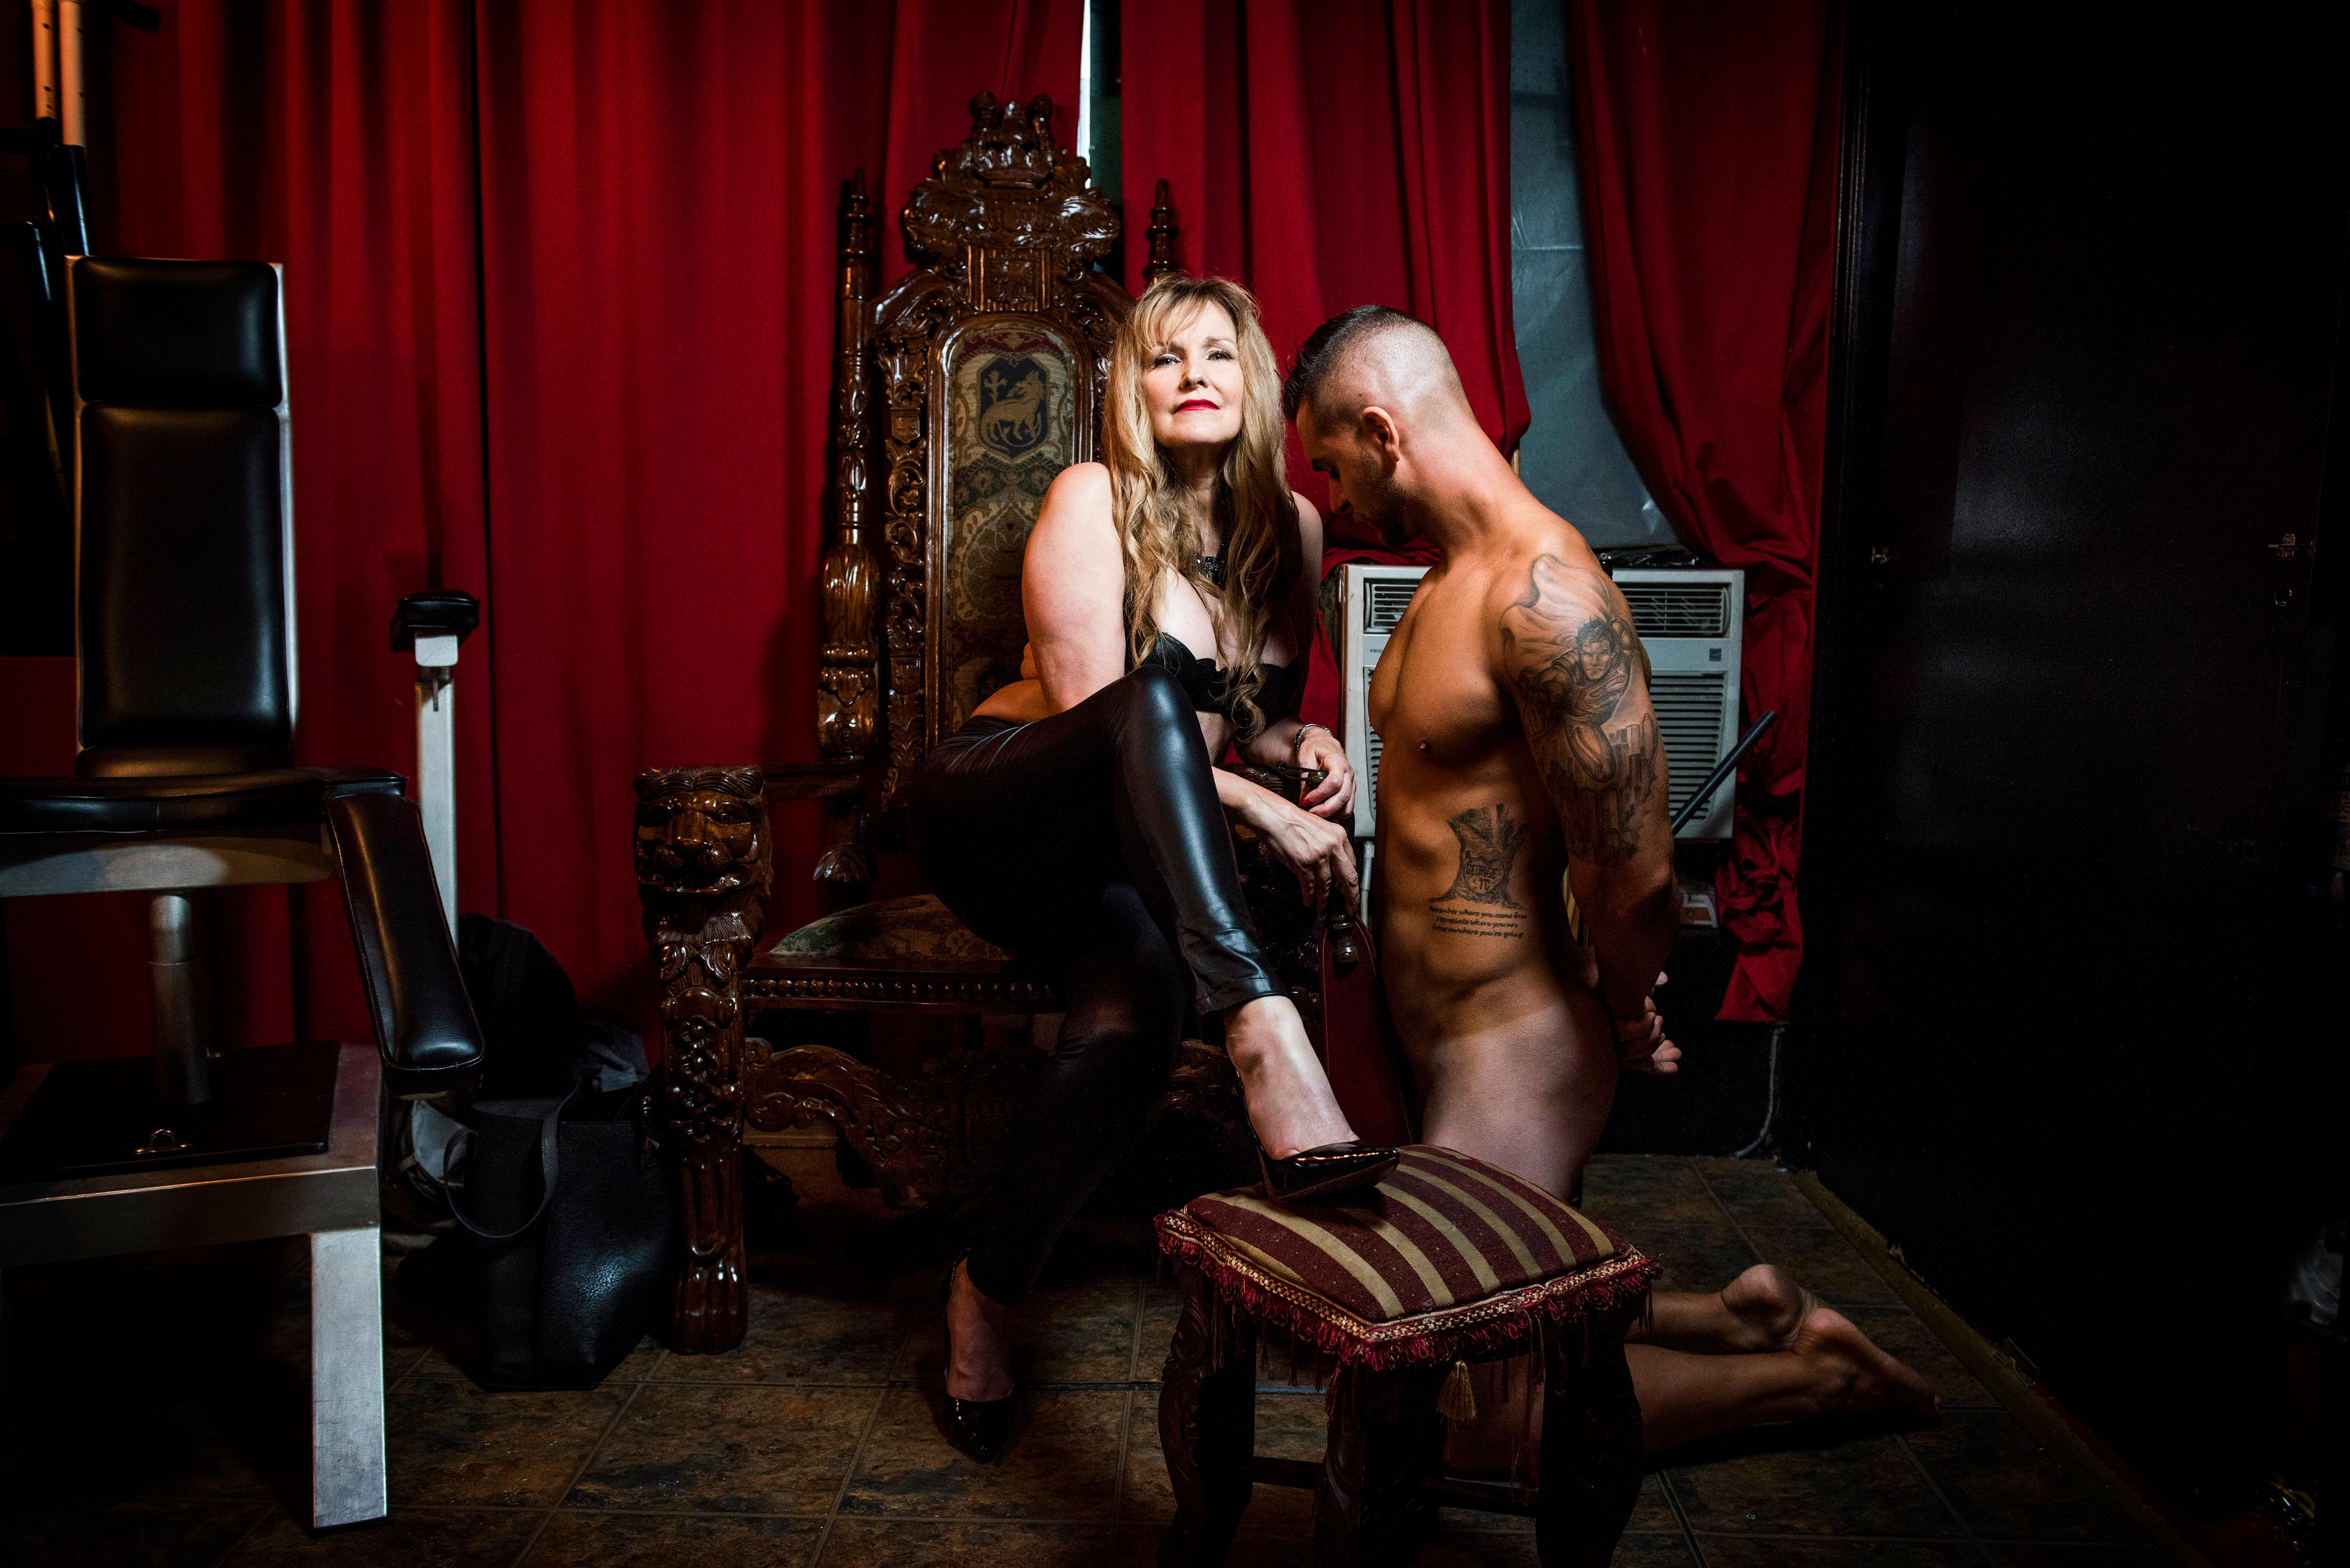 15 Unbelievable Photos Of A 60-Year-Old Dominatrix With Her Client (NSFW)